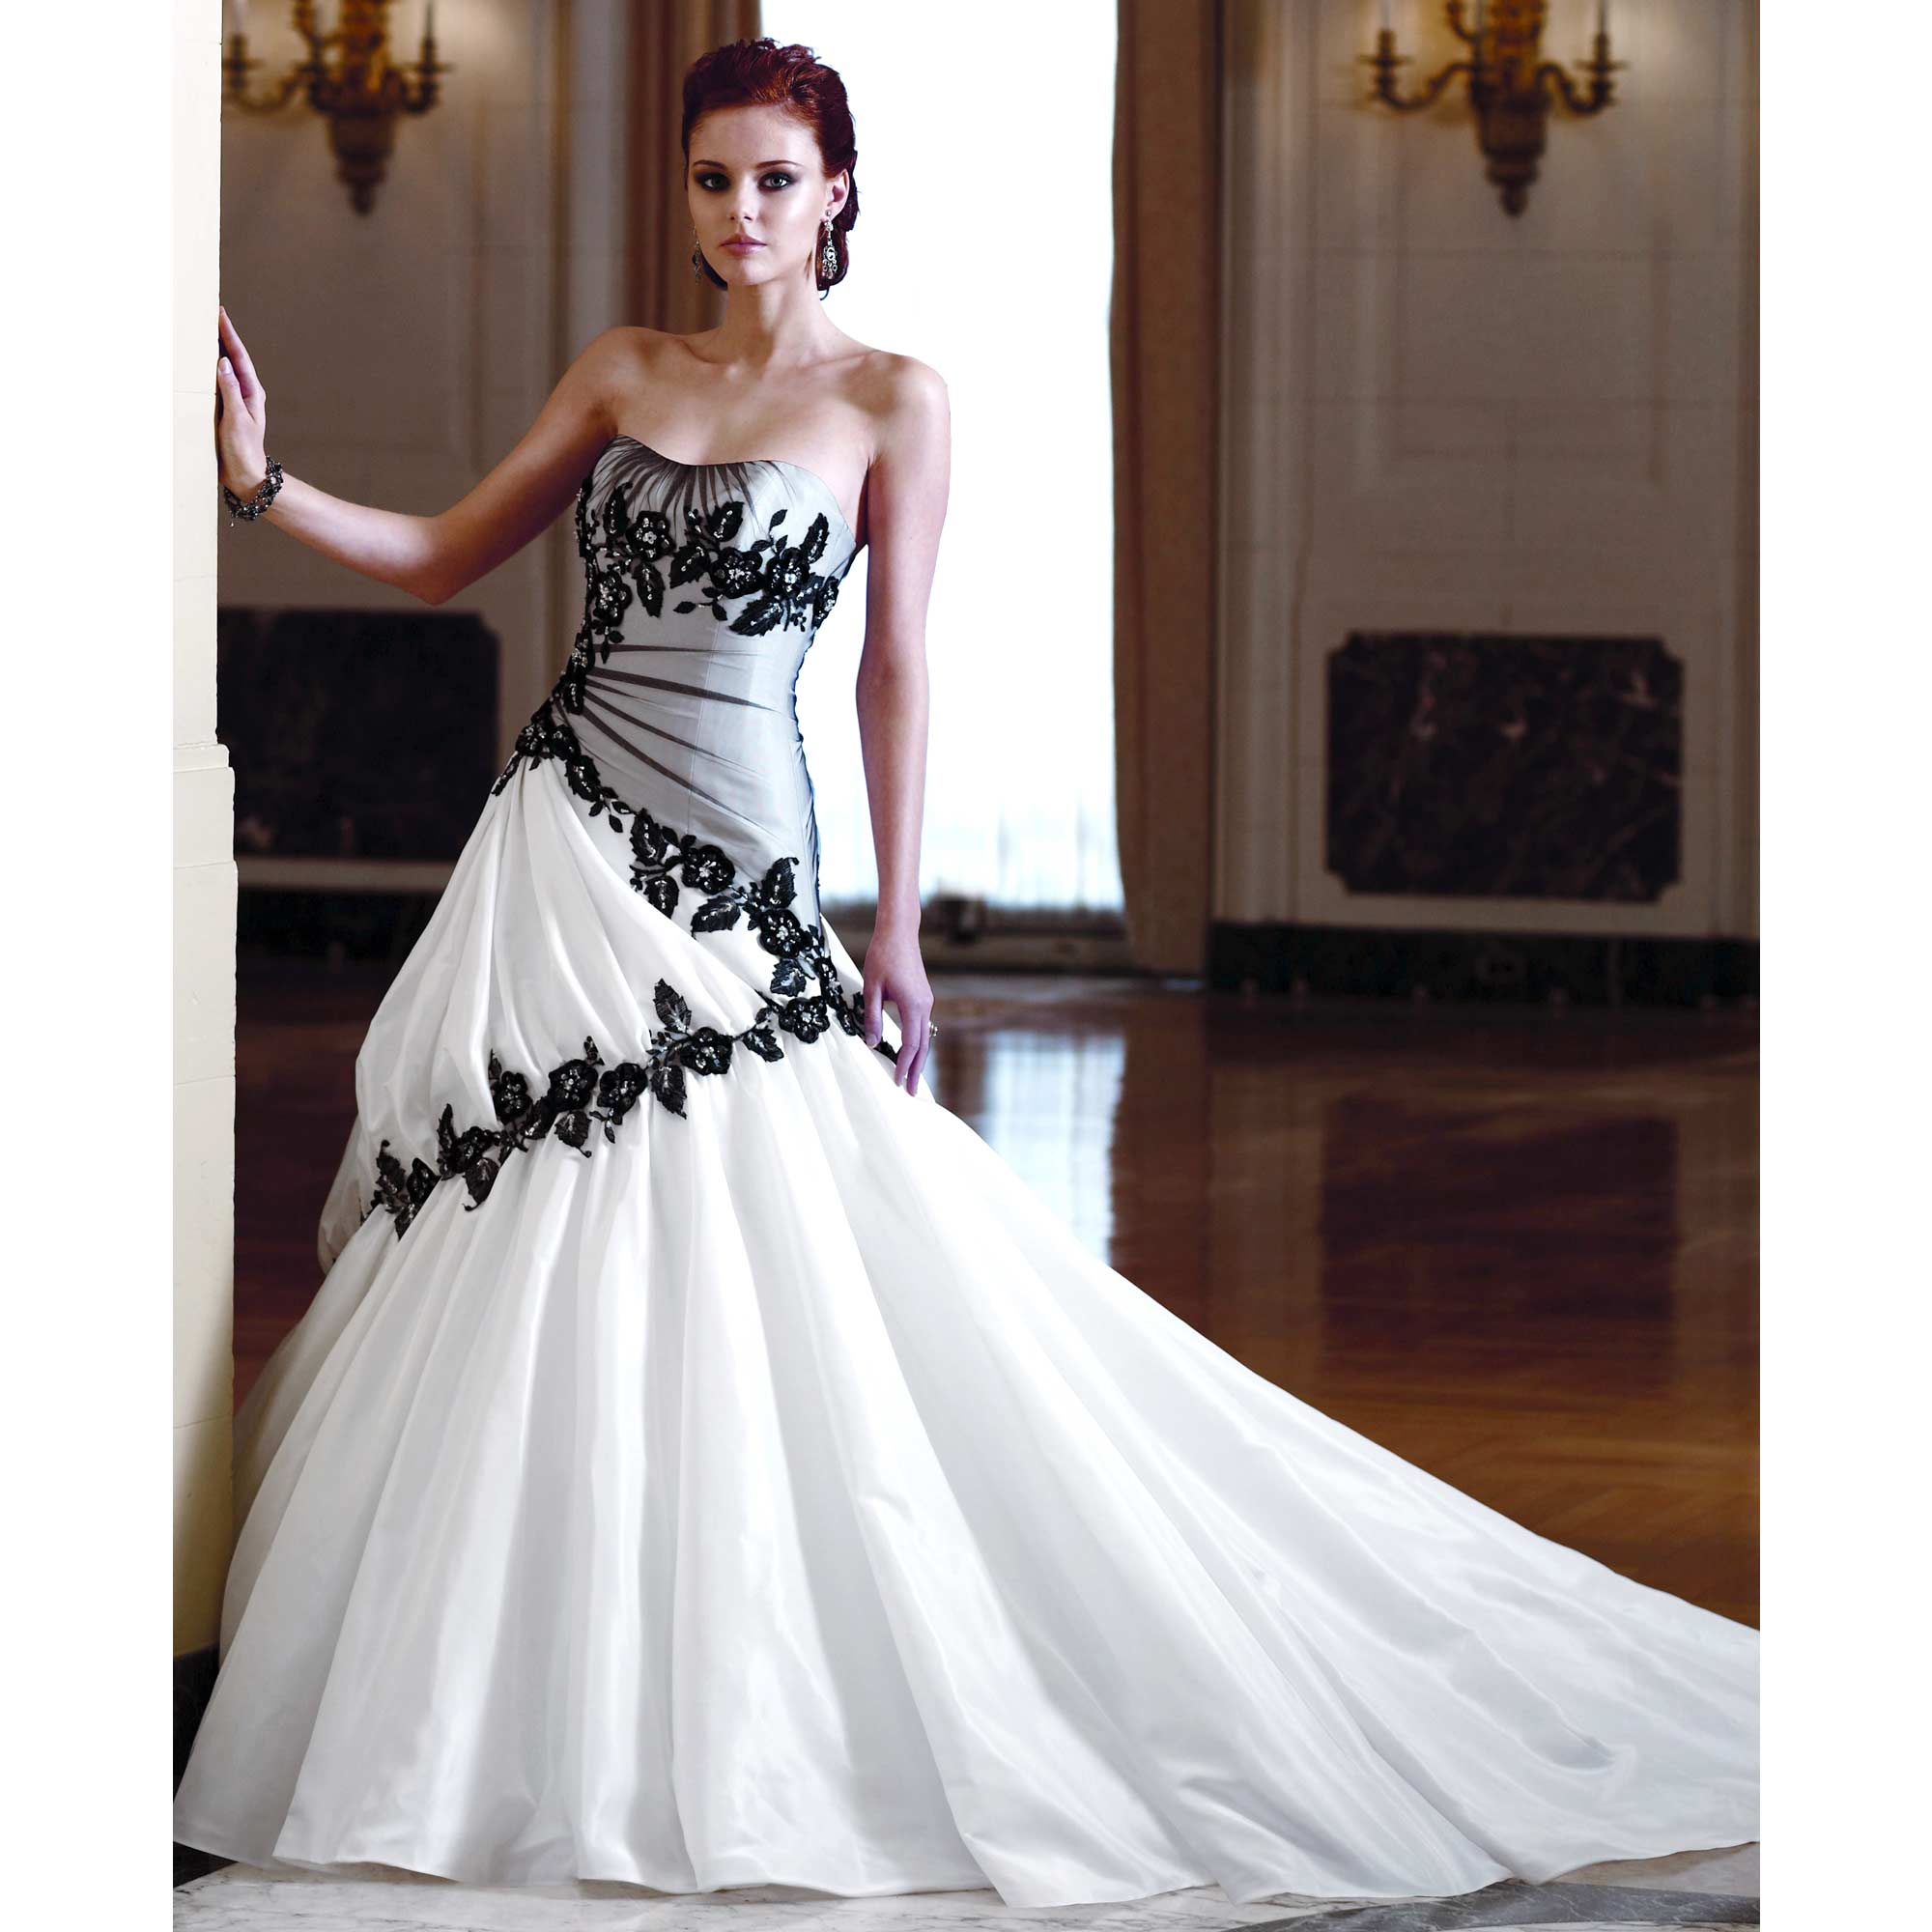 Ball gown black white wedding dress wedding plan ideas for Images of black wedding dresses